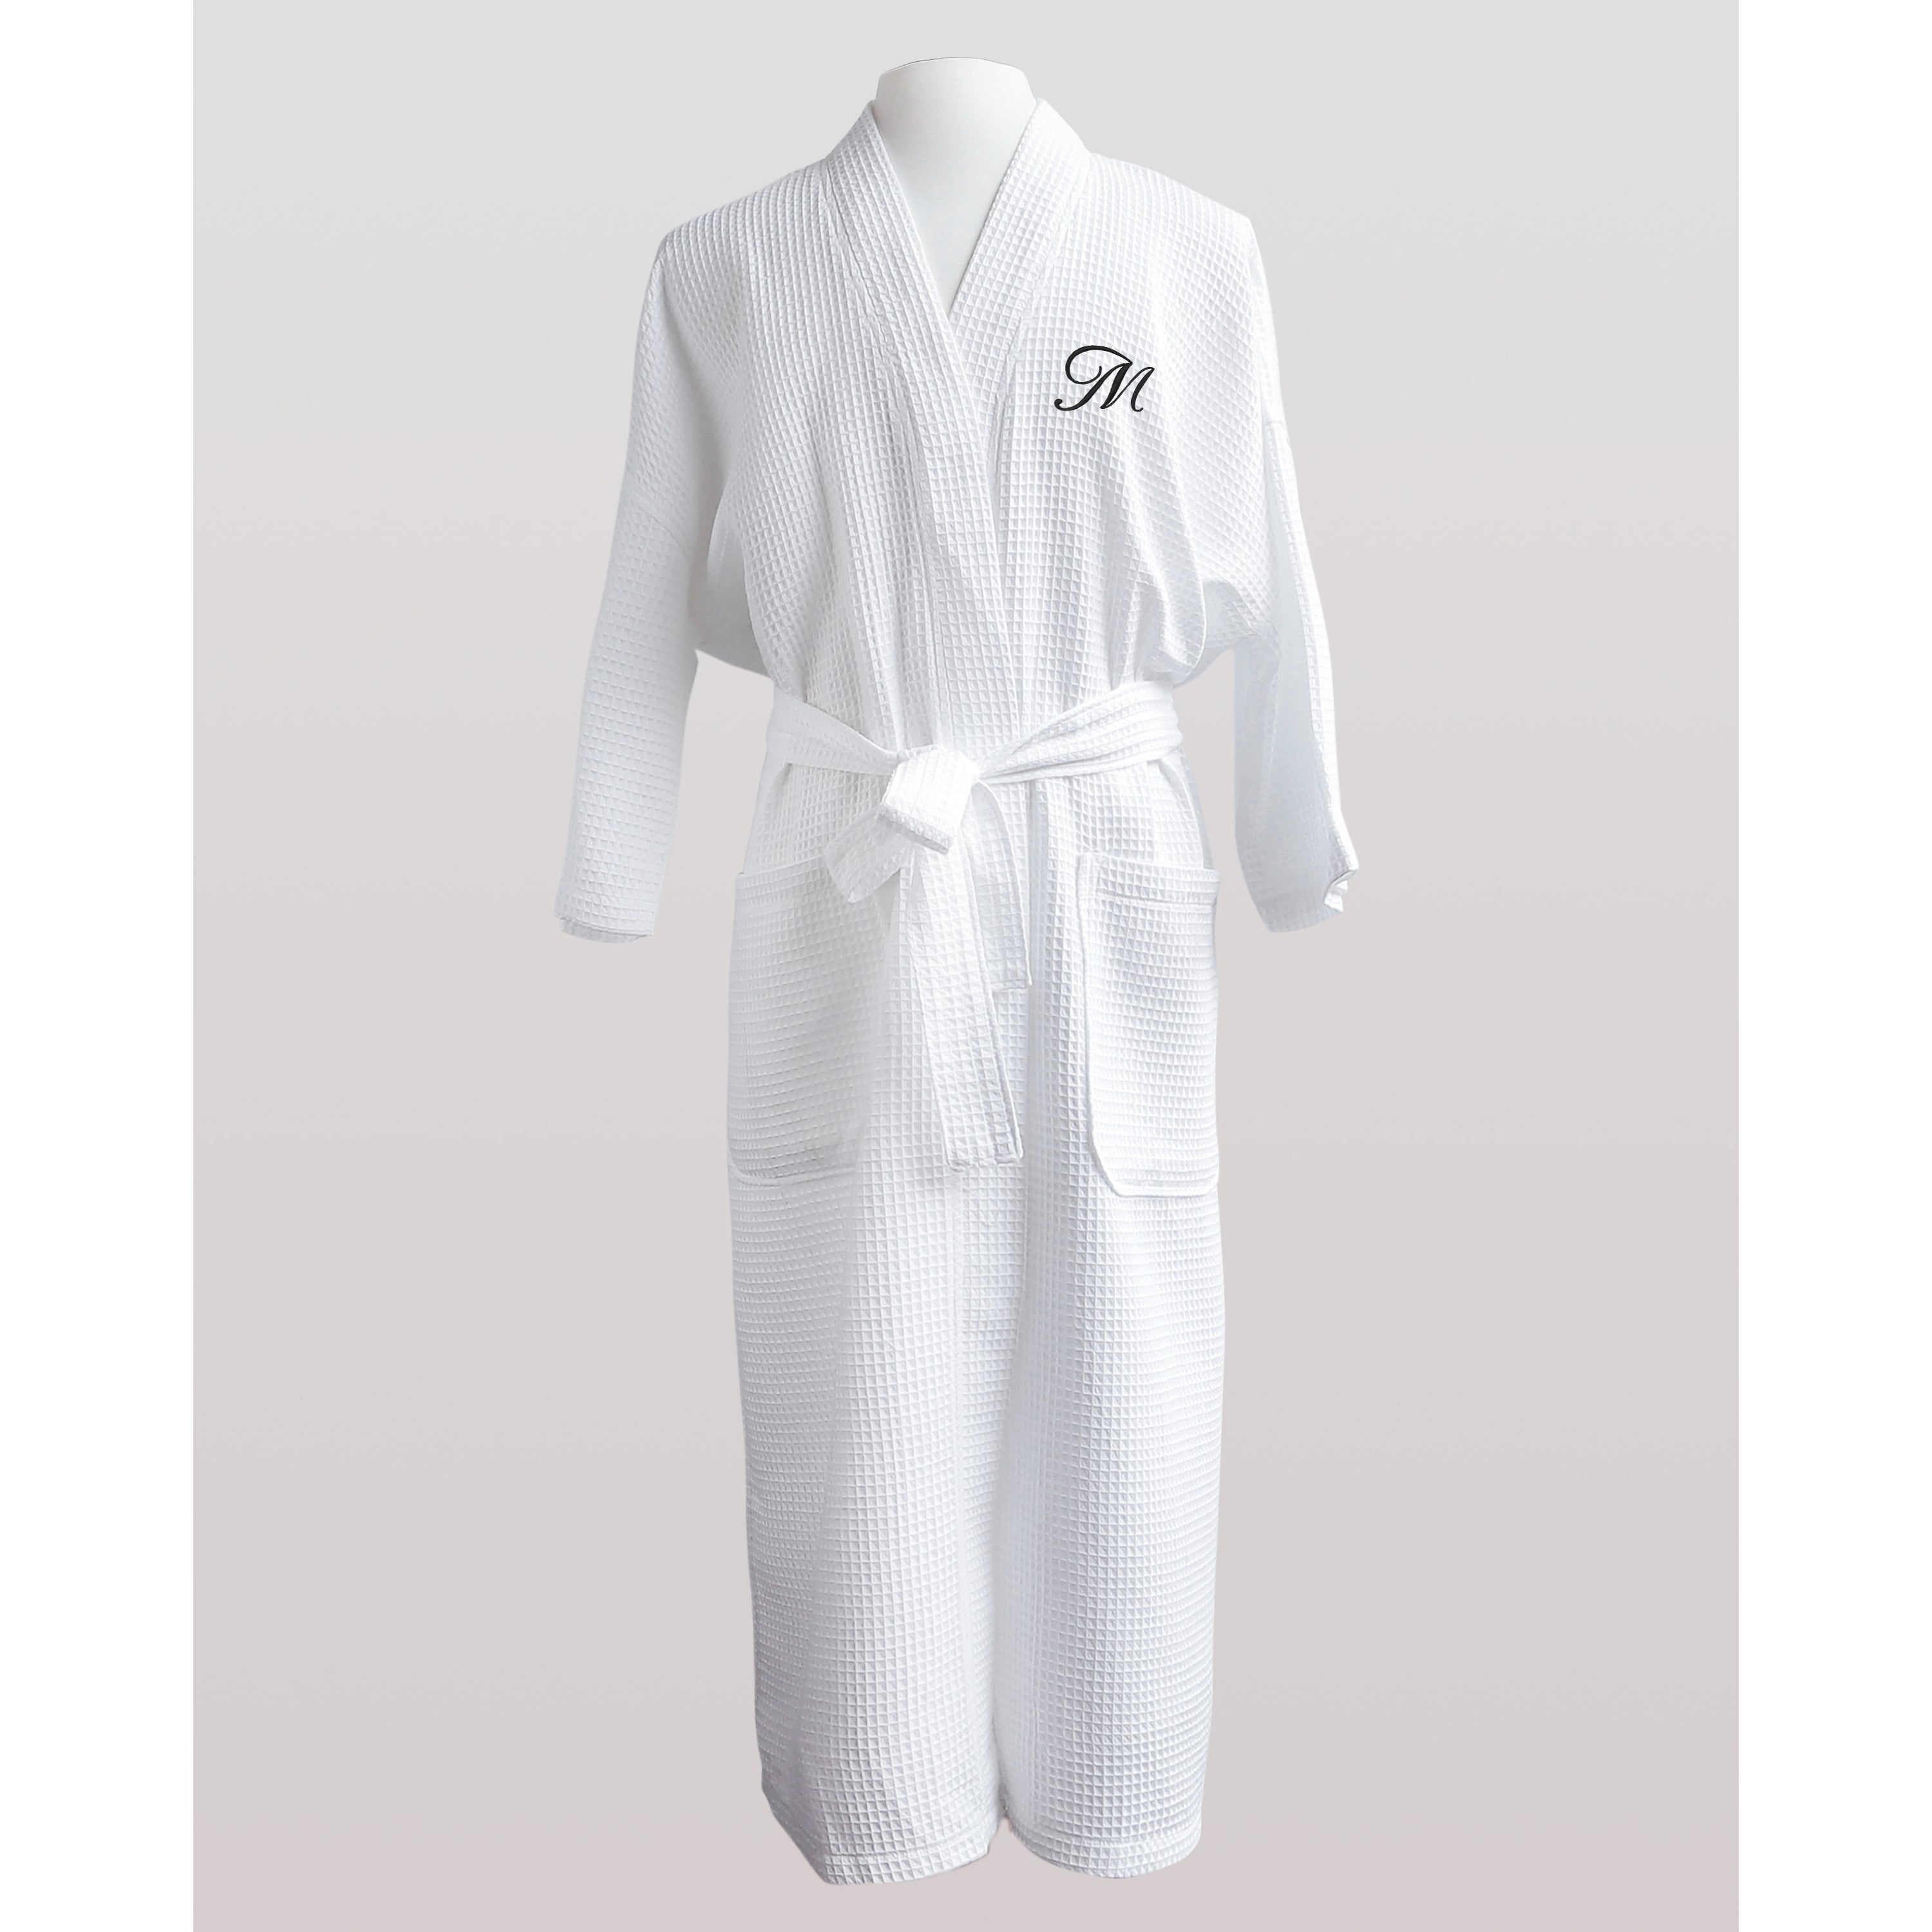 fb4f261040 Shop Finley Unisex Egyptian Cotton Monogram Waffle Spa Robe - Free Shipping  Today - Overstock - 10102576